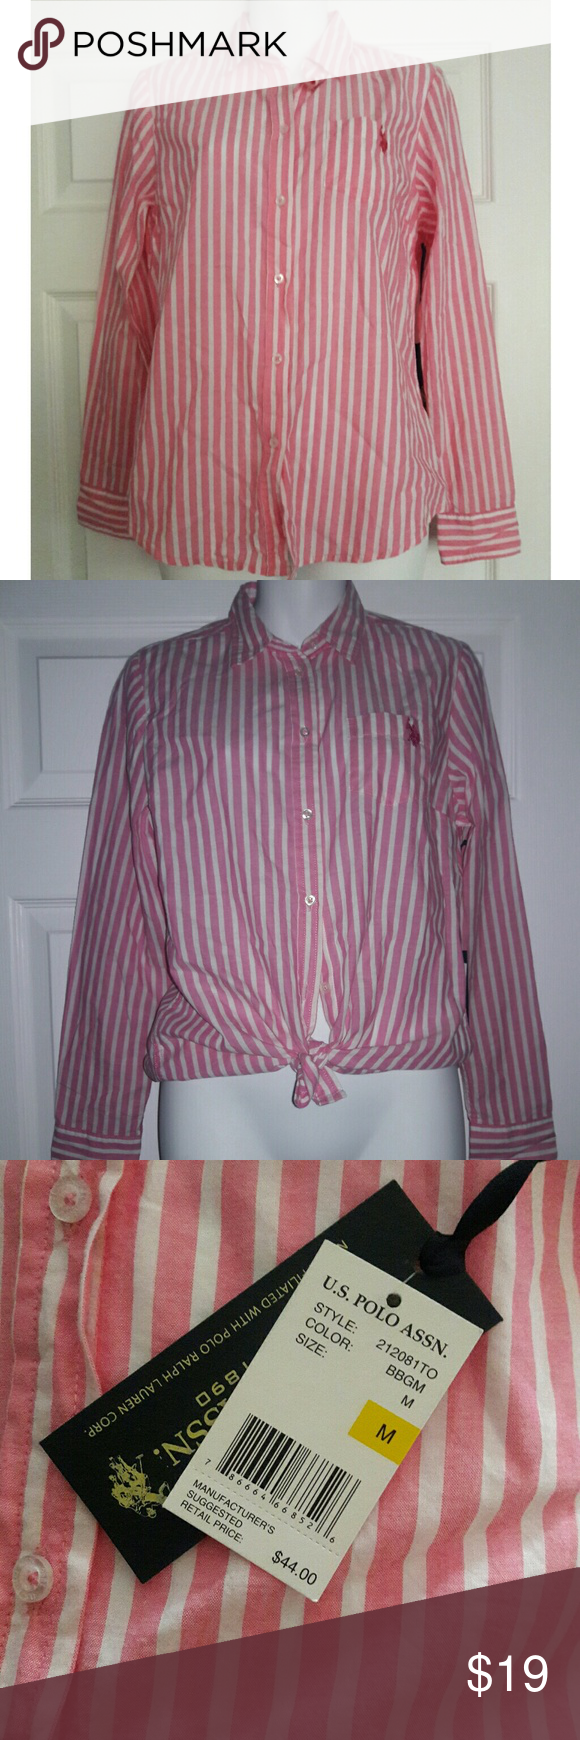 U.S. Polo Assn. Button down NWT medium Pink and white stripes Wear it different ways!  Can be tied at the bottom corners for an 80's look U.S. Polo Assn. Tops Button Down Shirts